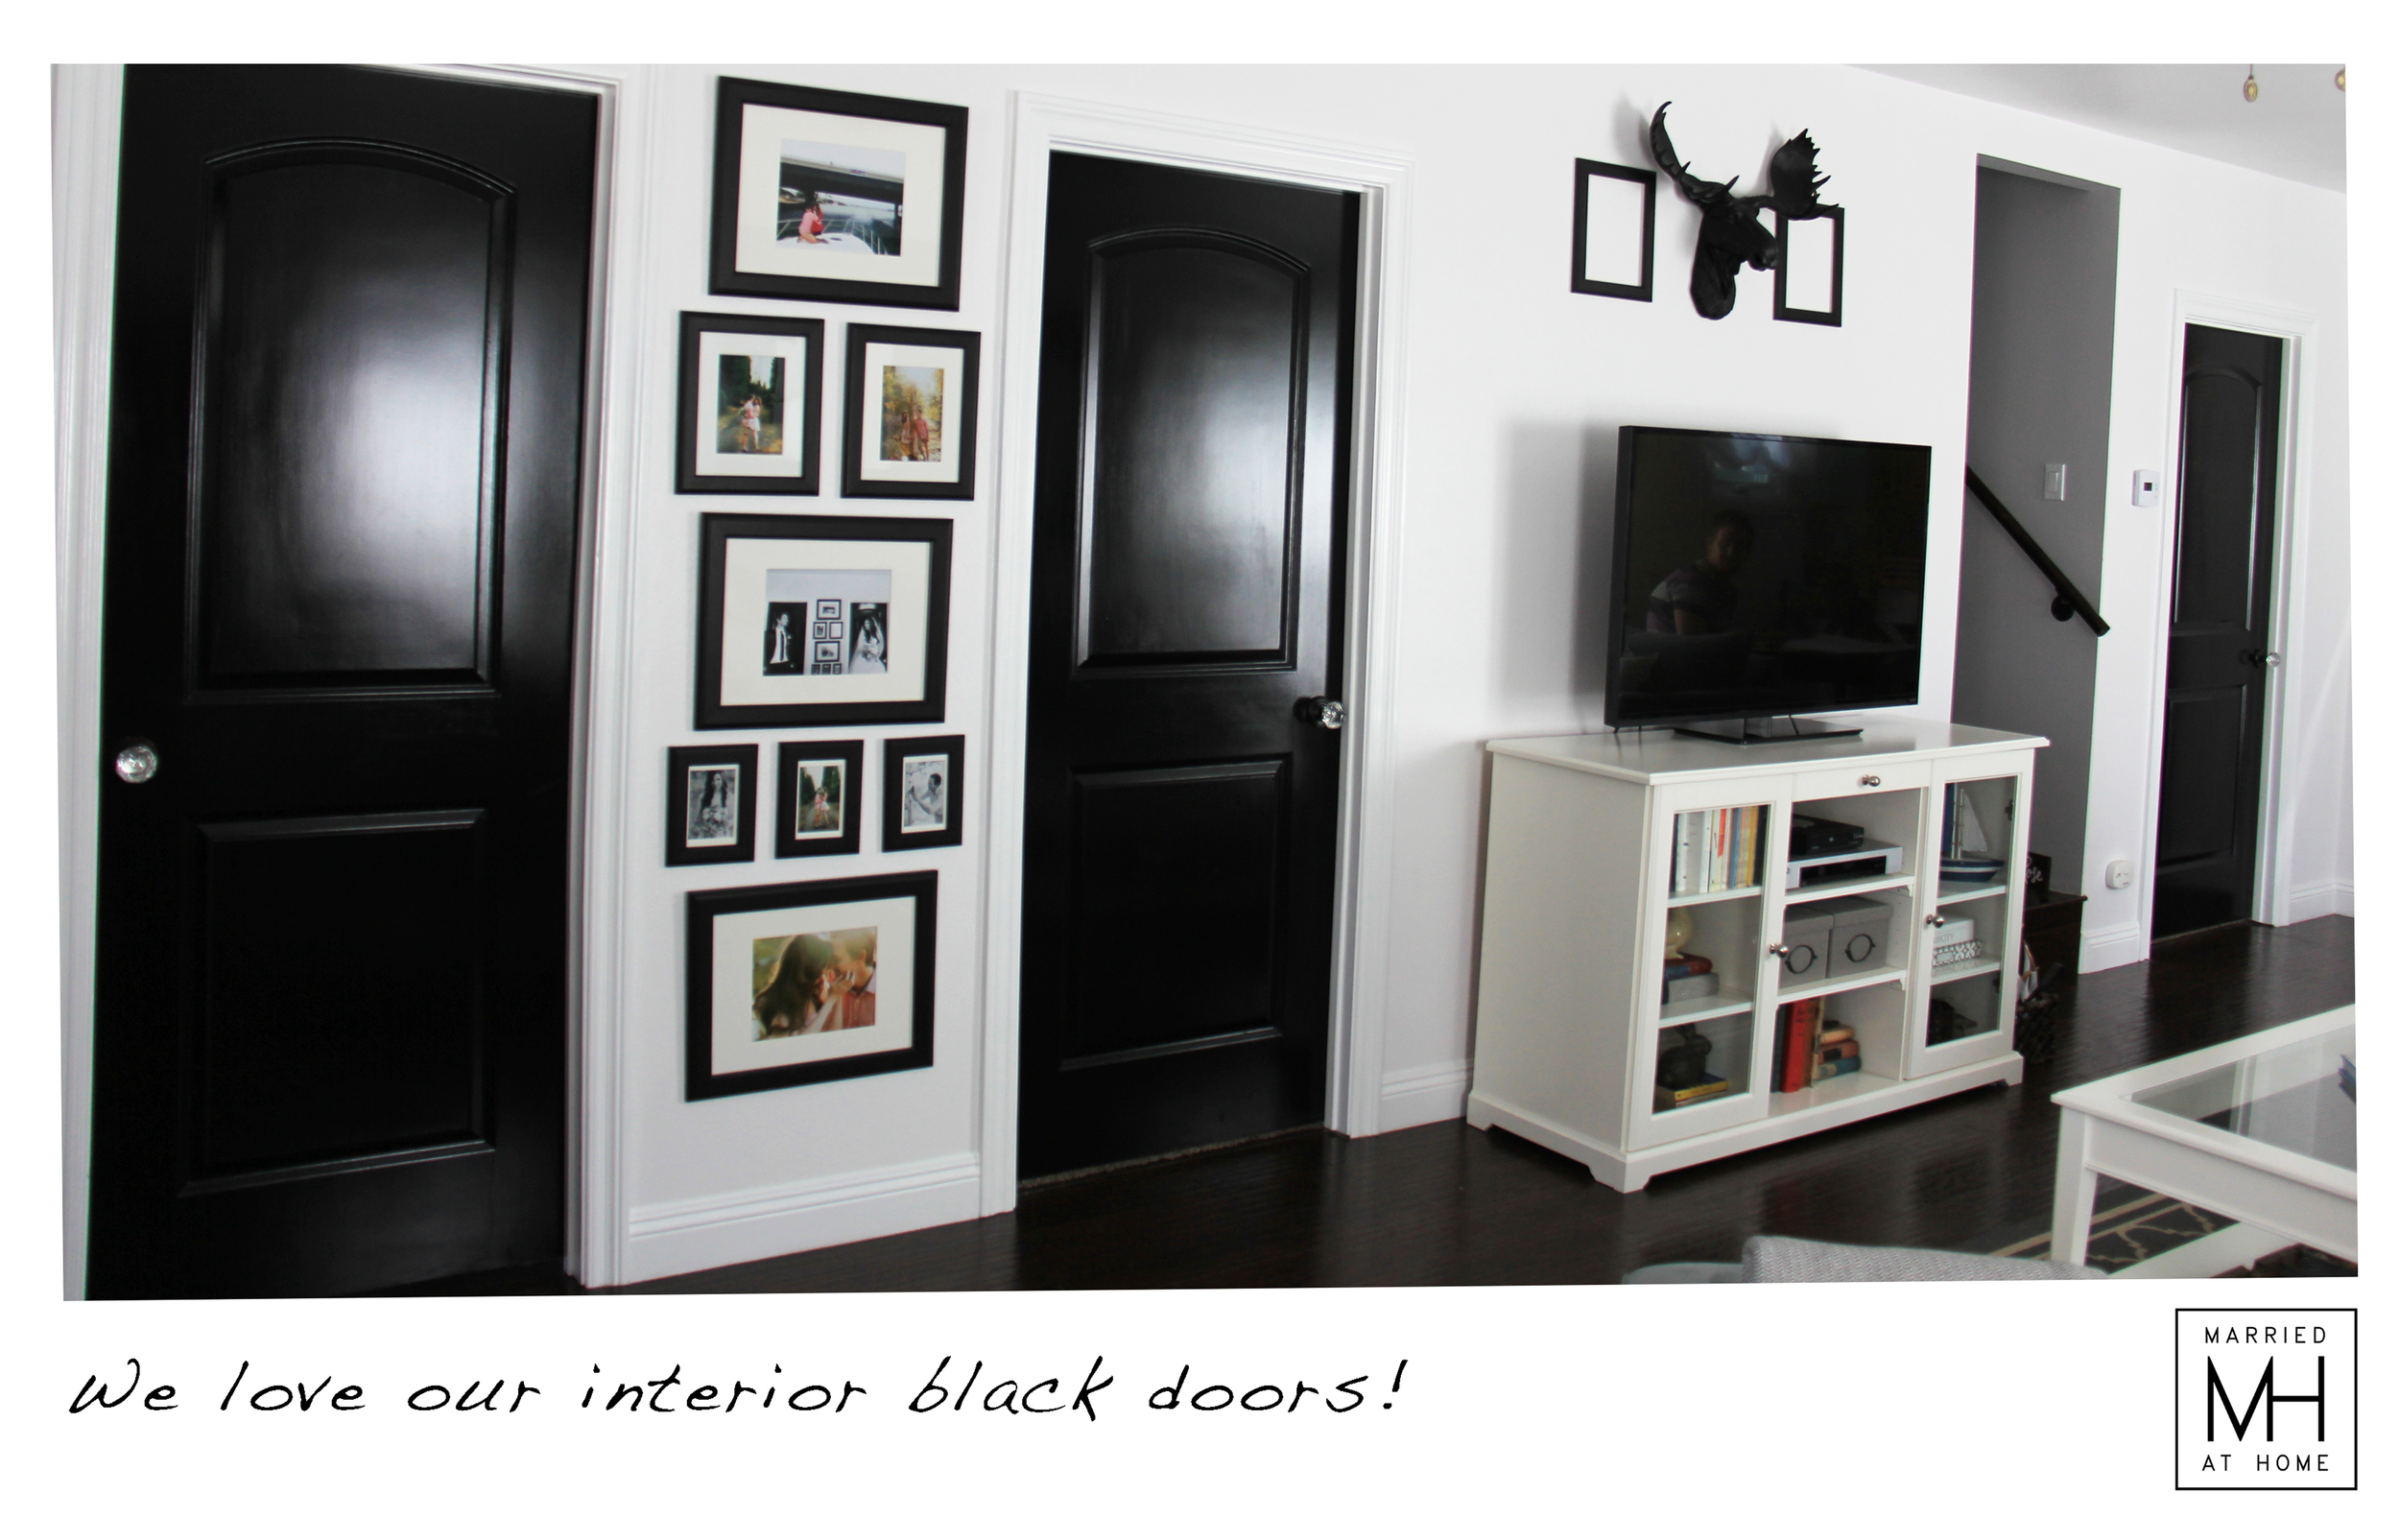 Interior Black Doors | Married At Home